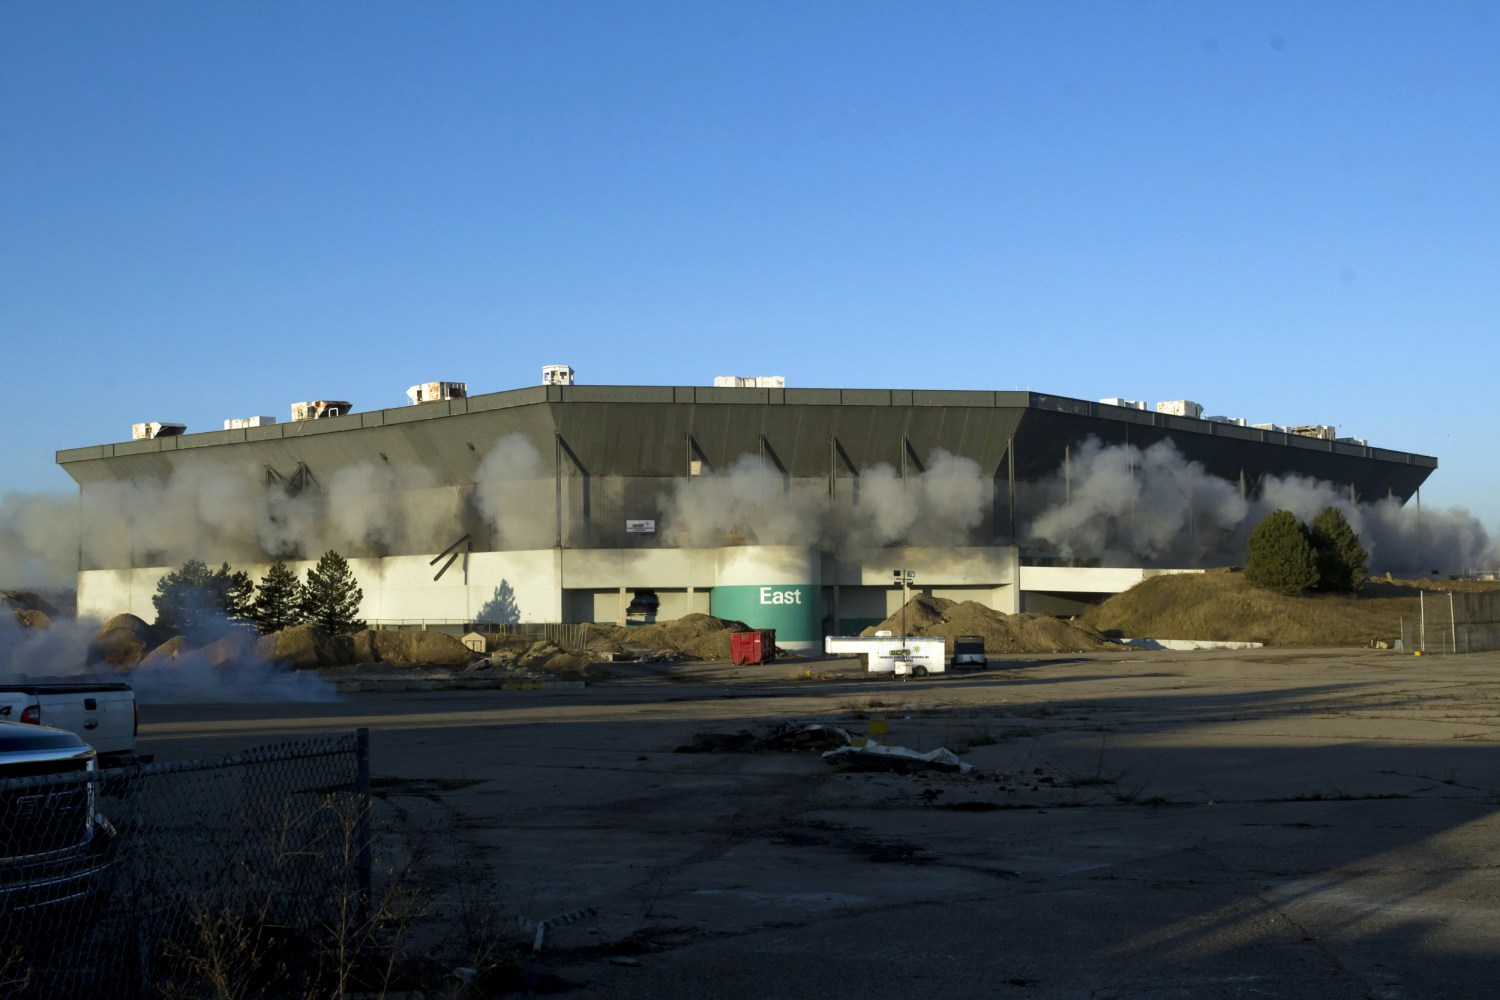 Pontiac Silverdome football stadium still standing after implosion